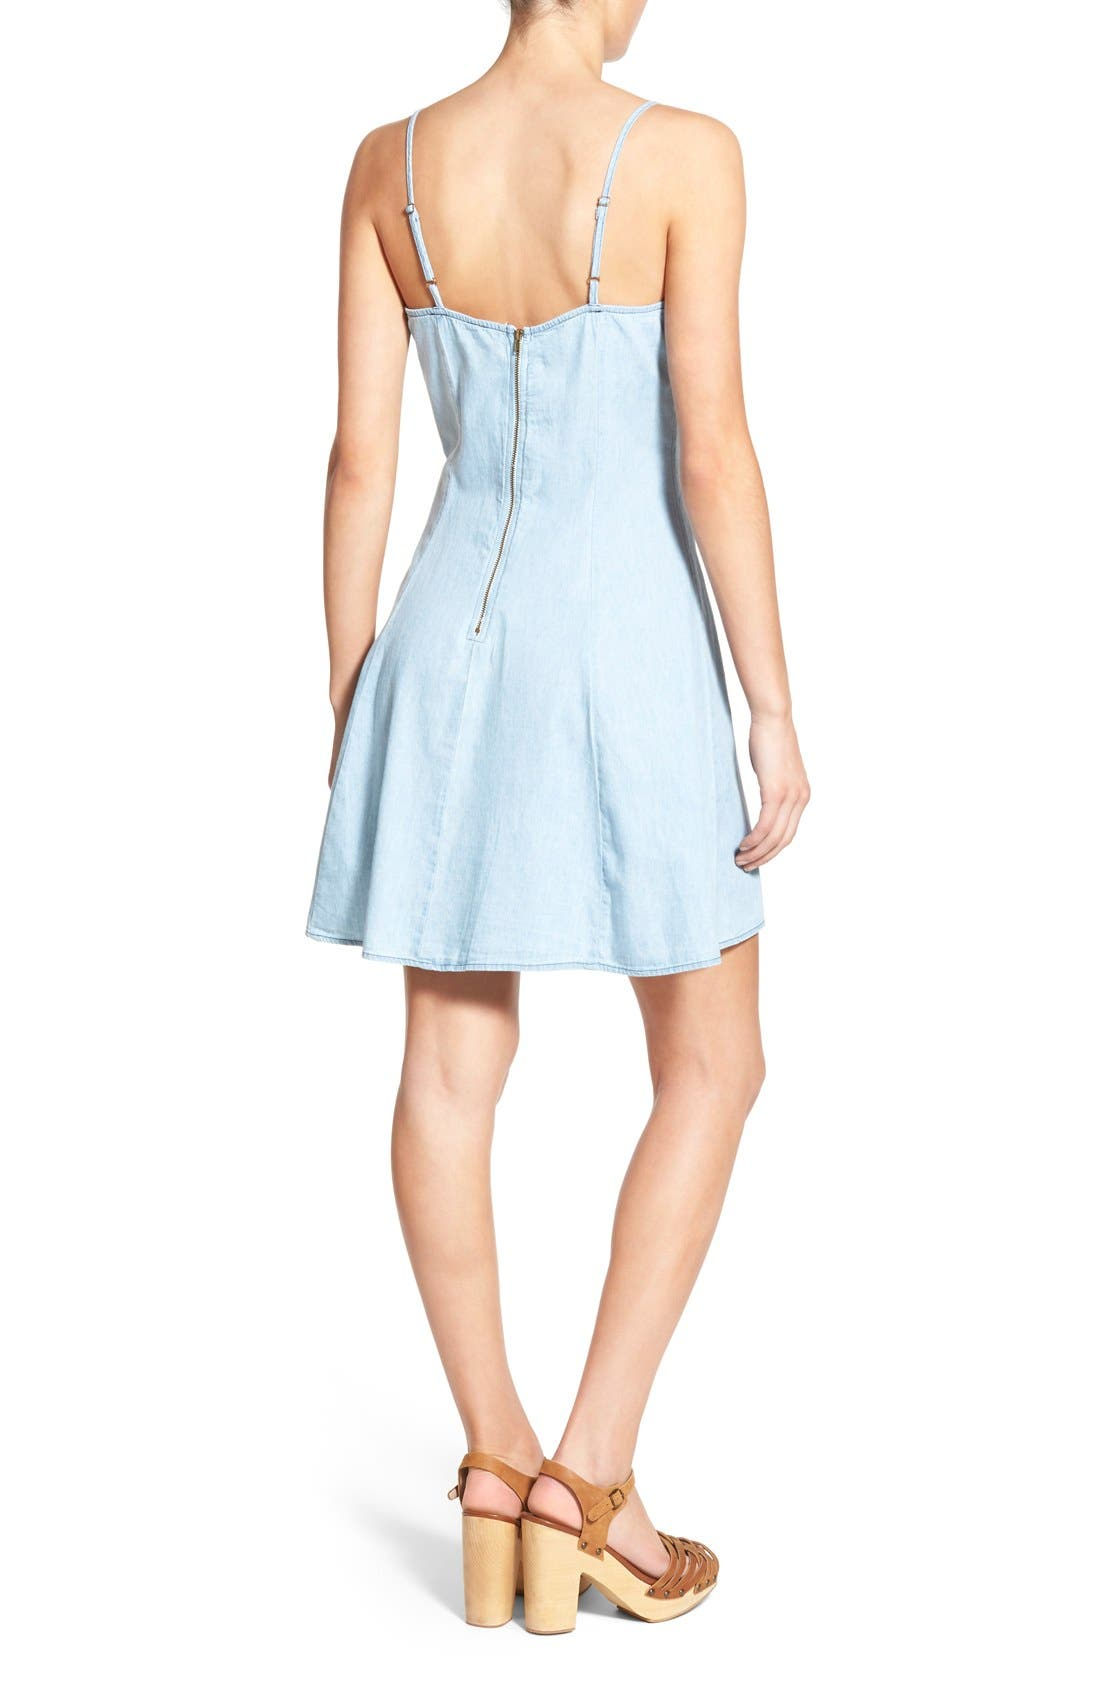 MIMI CHICA,                             Denim Skater Dress,                             Alternate thumbnail 4, color,                             401